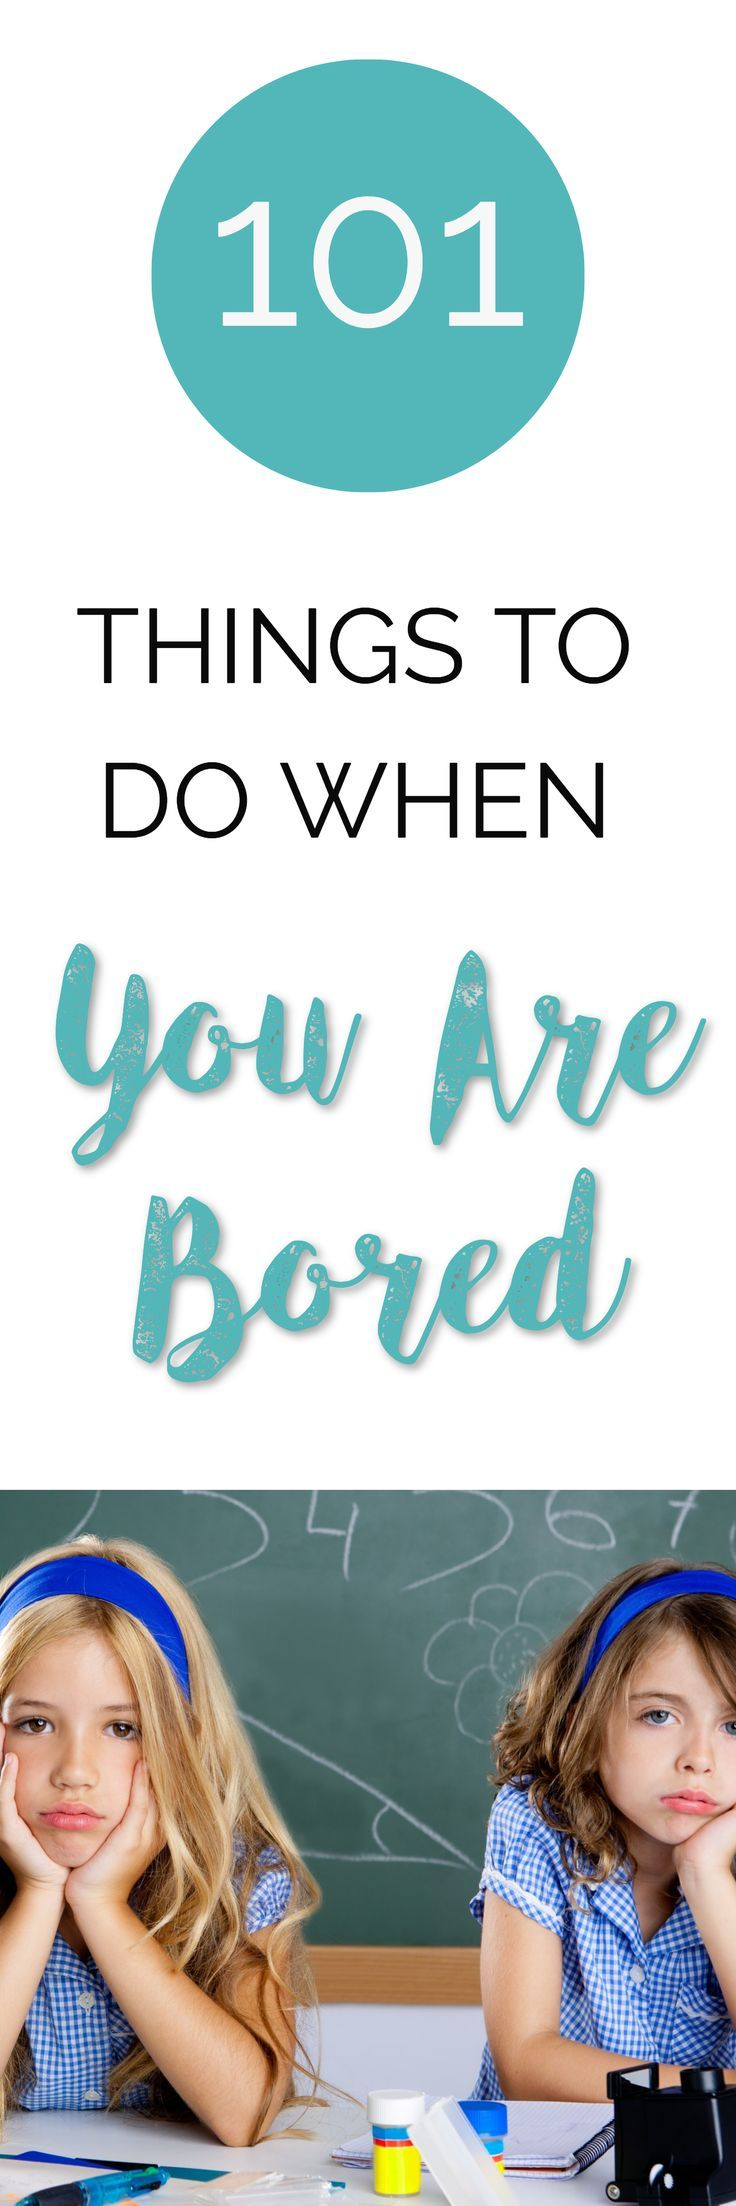 101 Fun and Interesting Things To Do When Bored (To Keep You Busy)